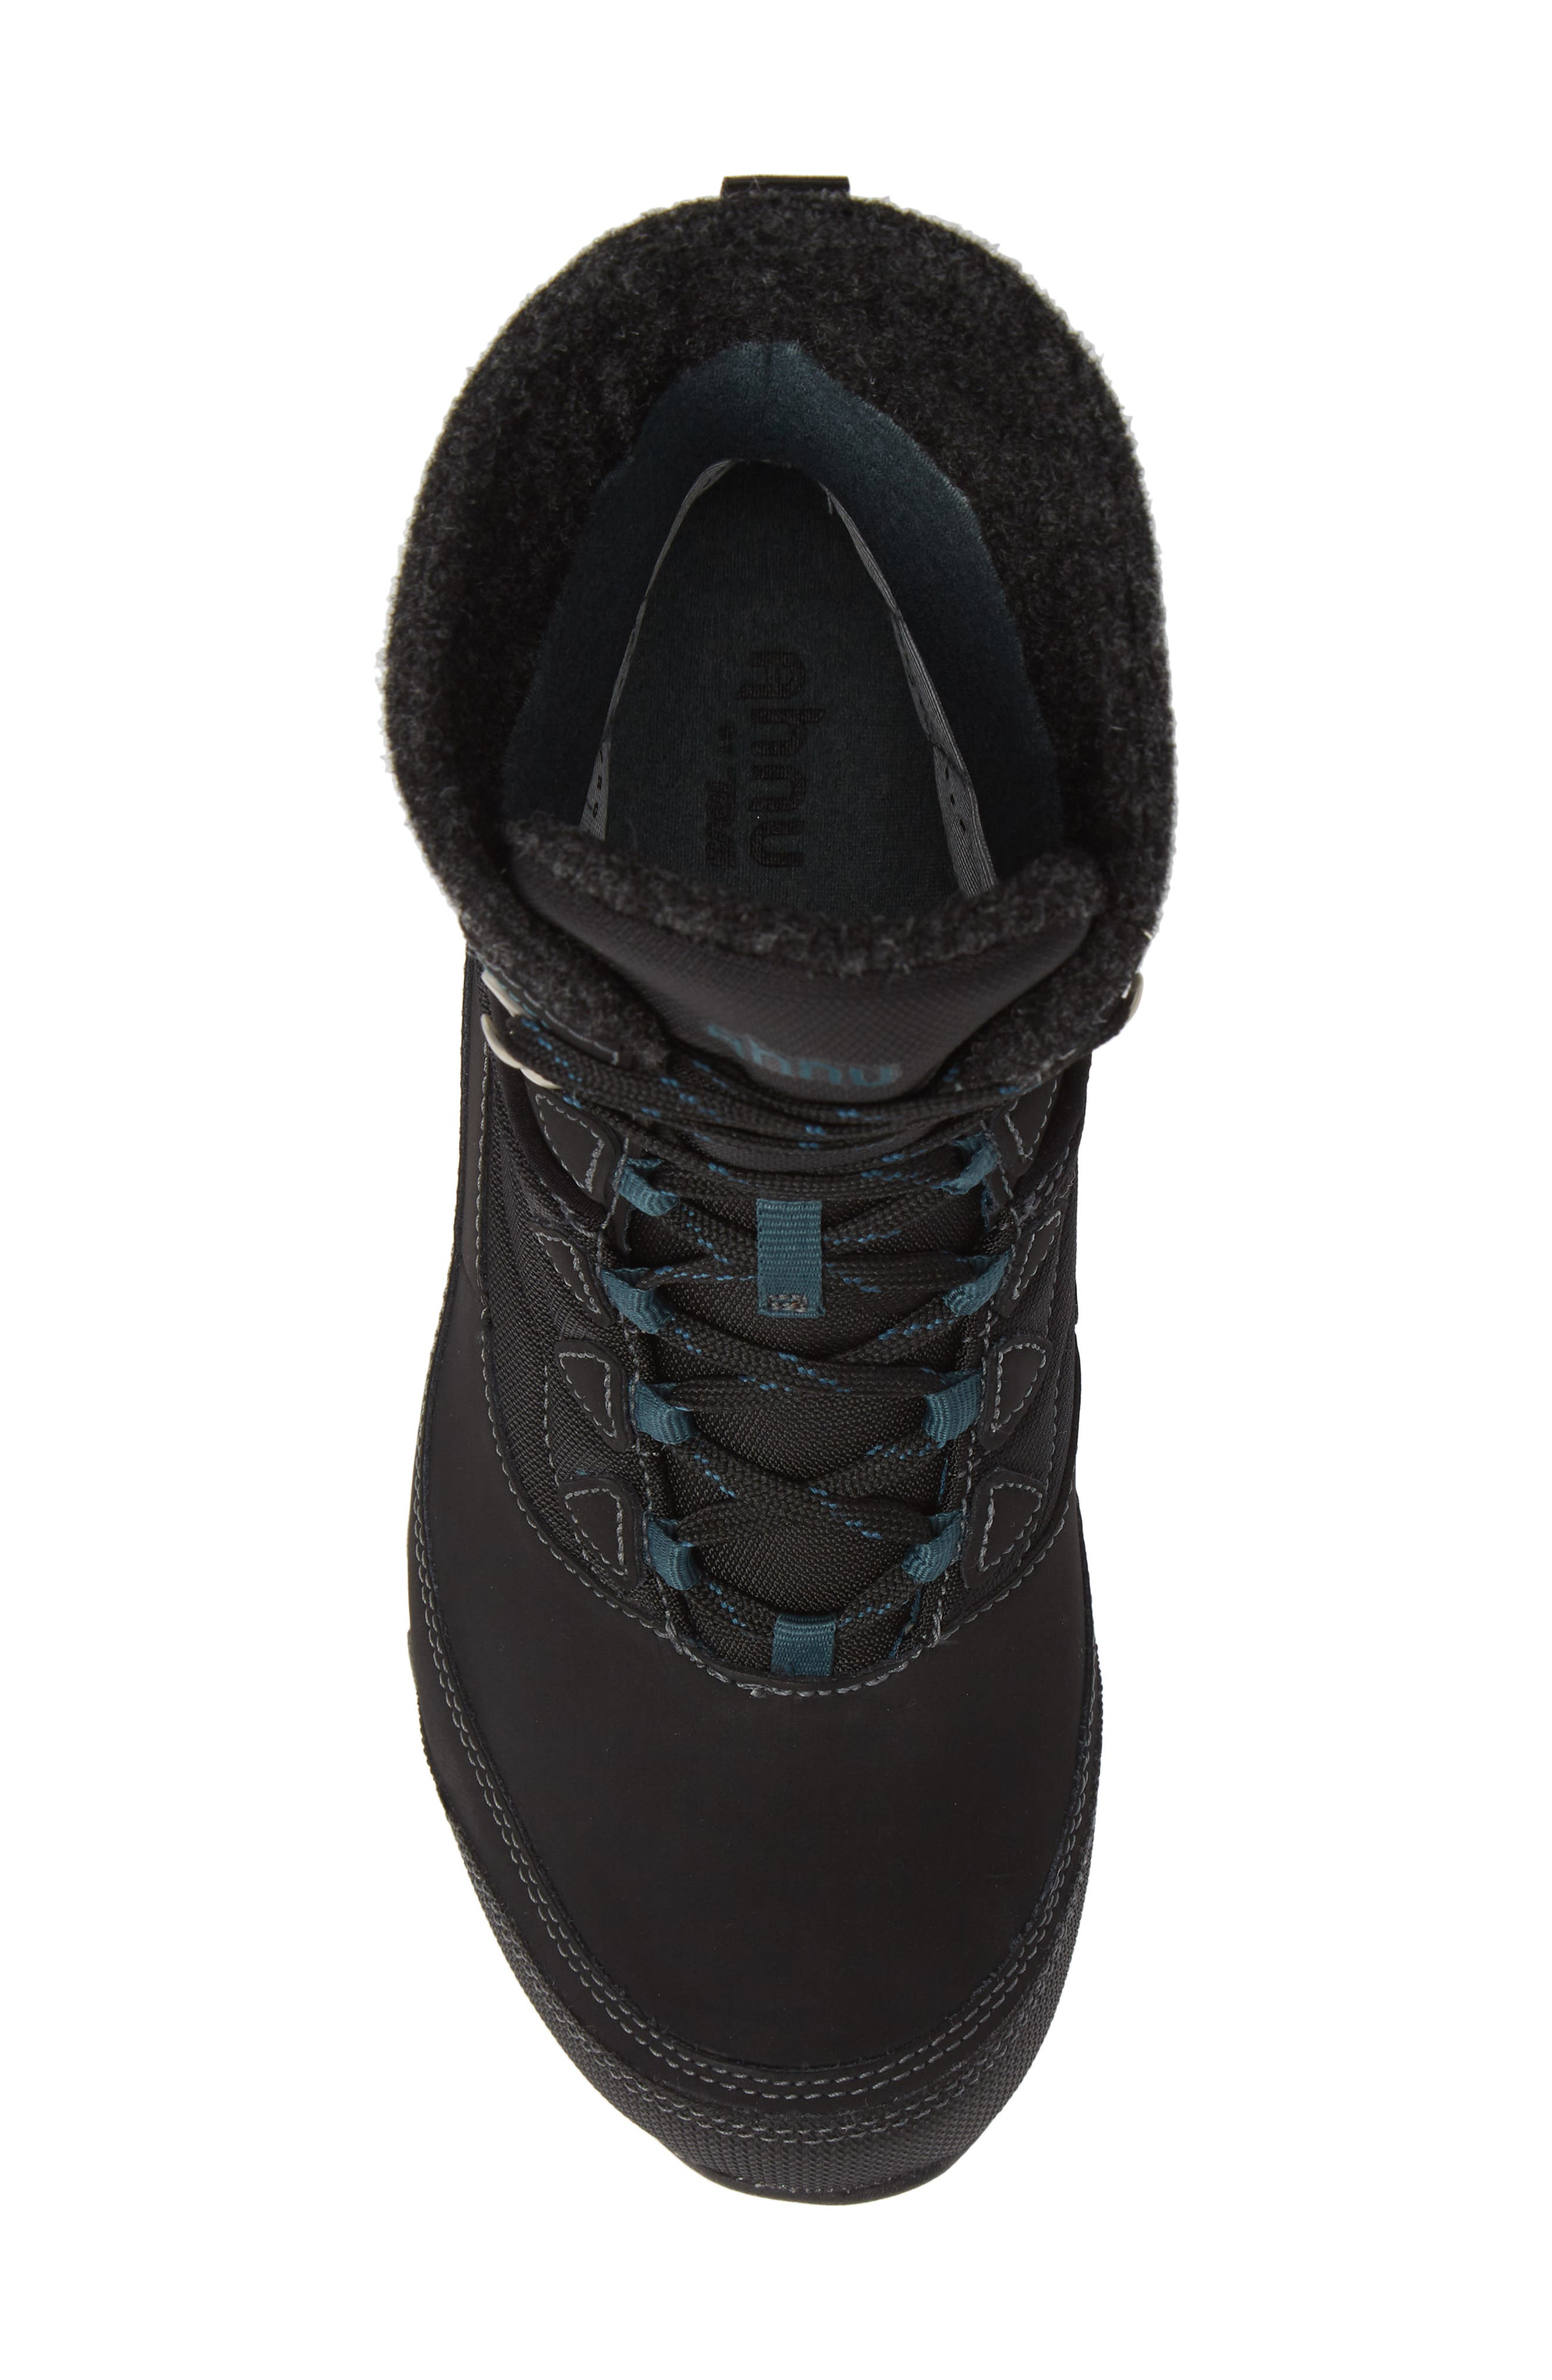 Ahnu by Teva Sugarfrost Insulated Waterproof Boot,                             Alternate thumbnail 5, color,                             BLACK LEATHER